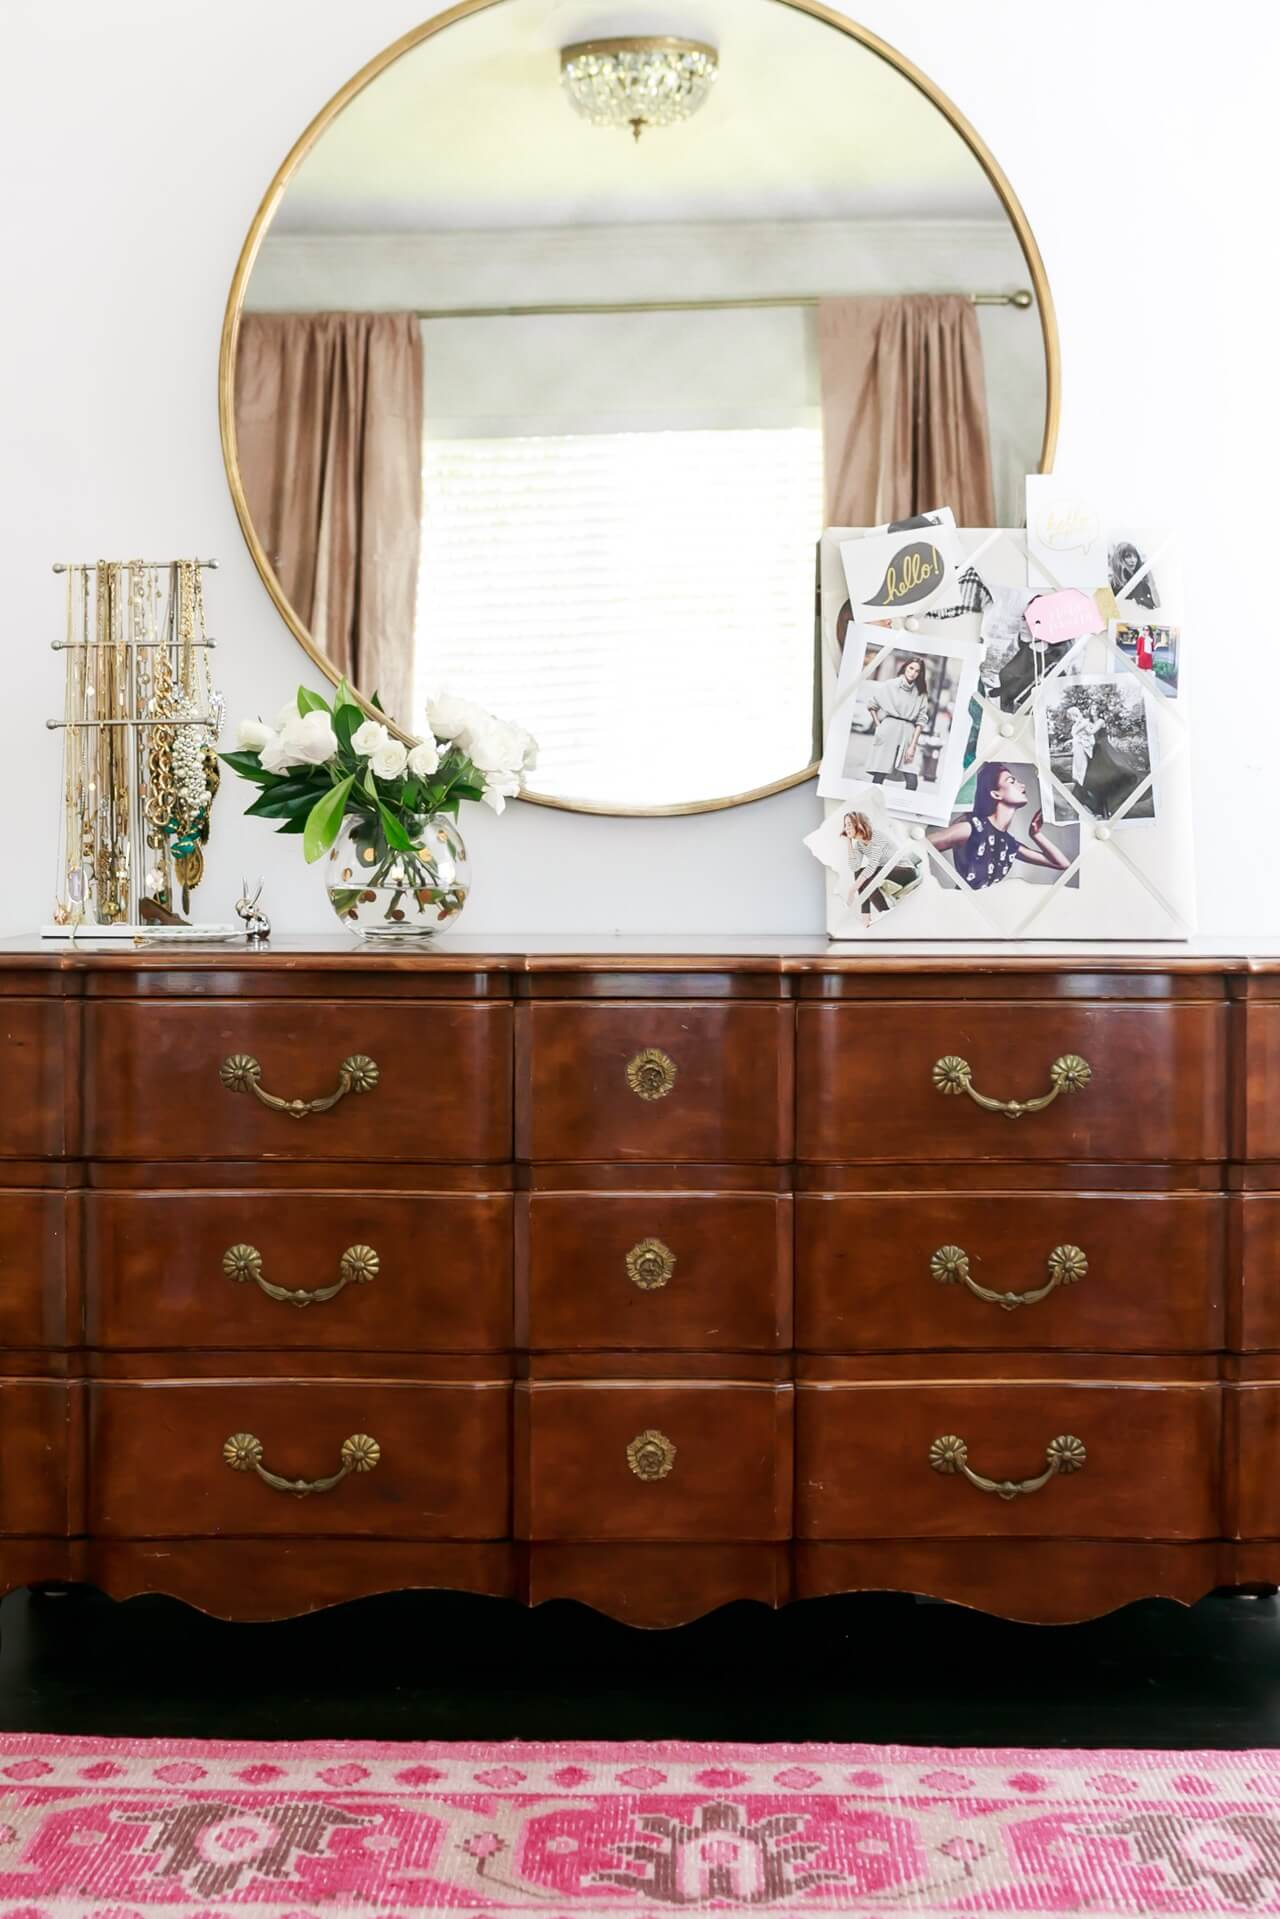 vintage dresser with inspiration board and round mirror